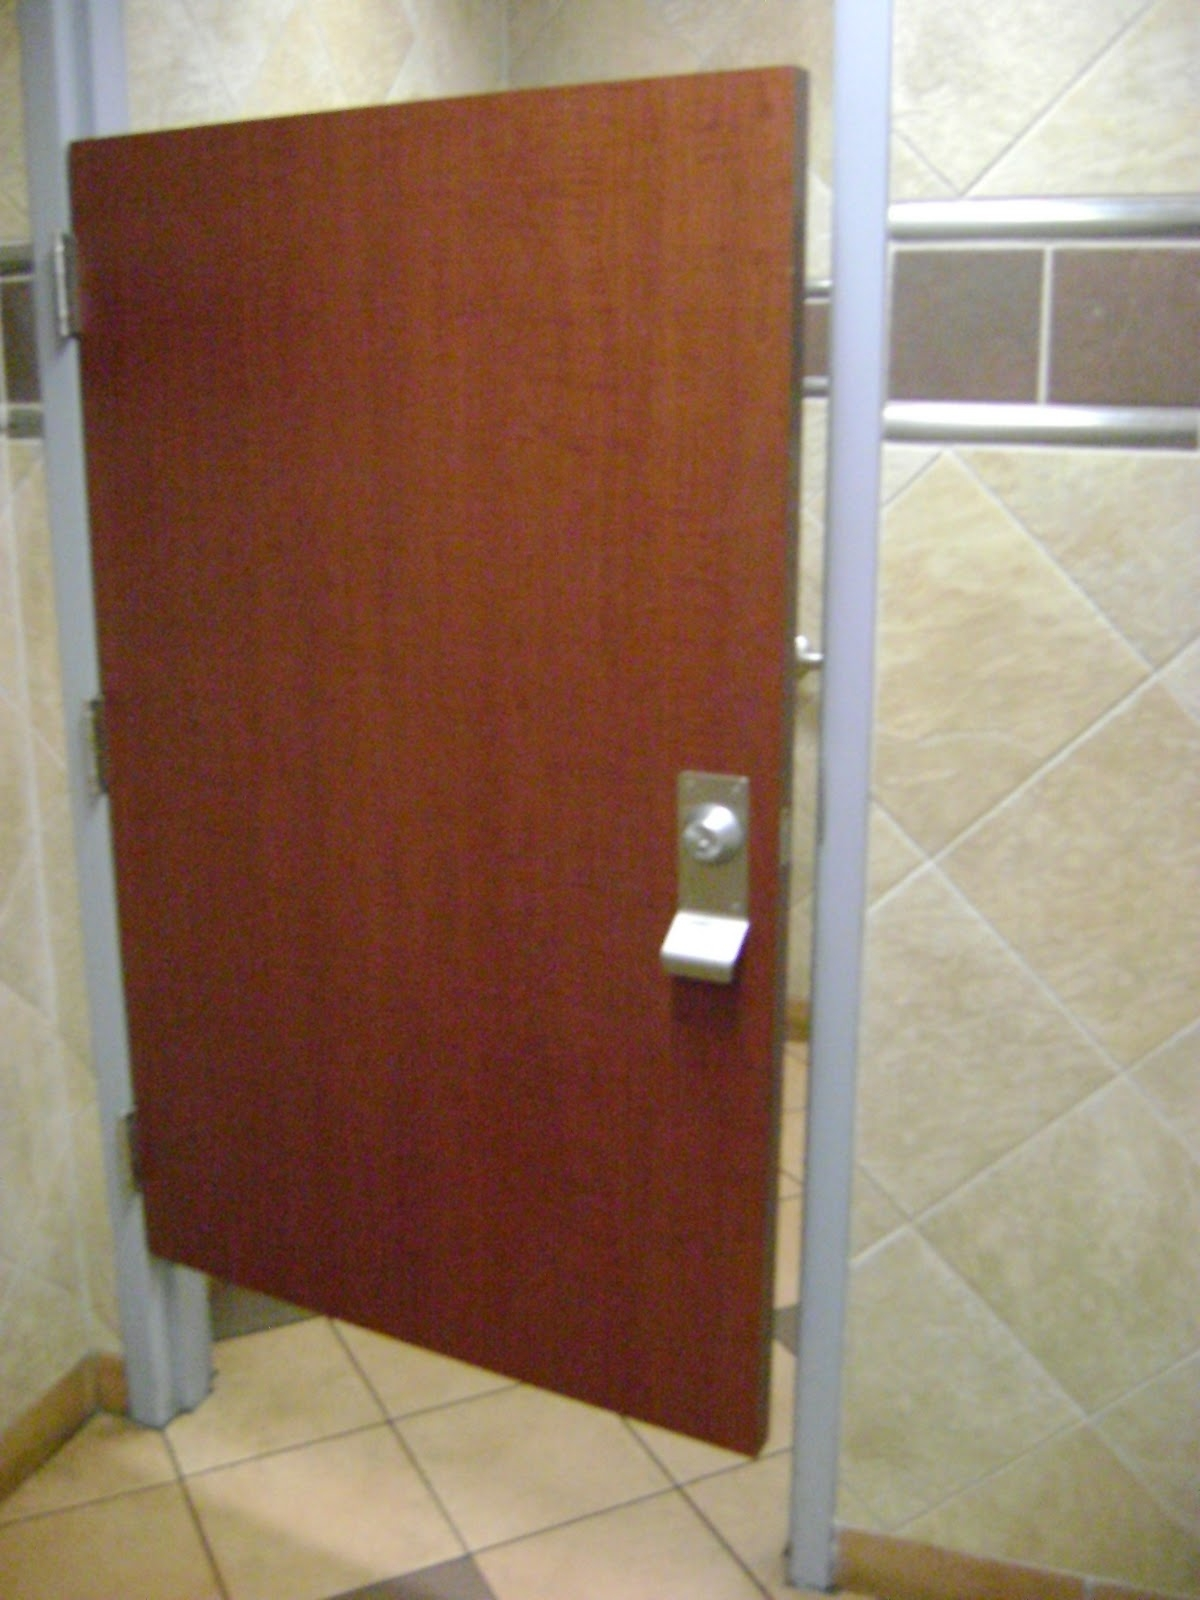 Bathroom Stall Door Hardwarebathroom stall door hardware